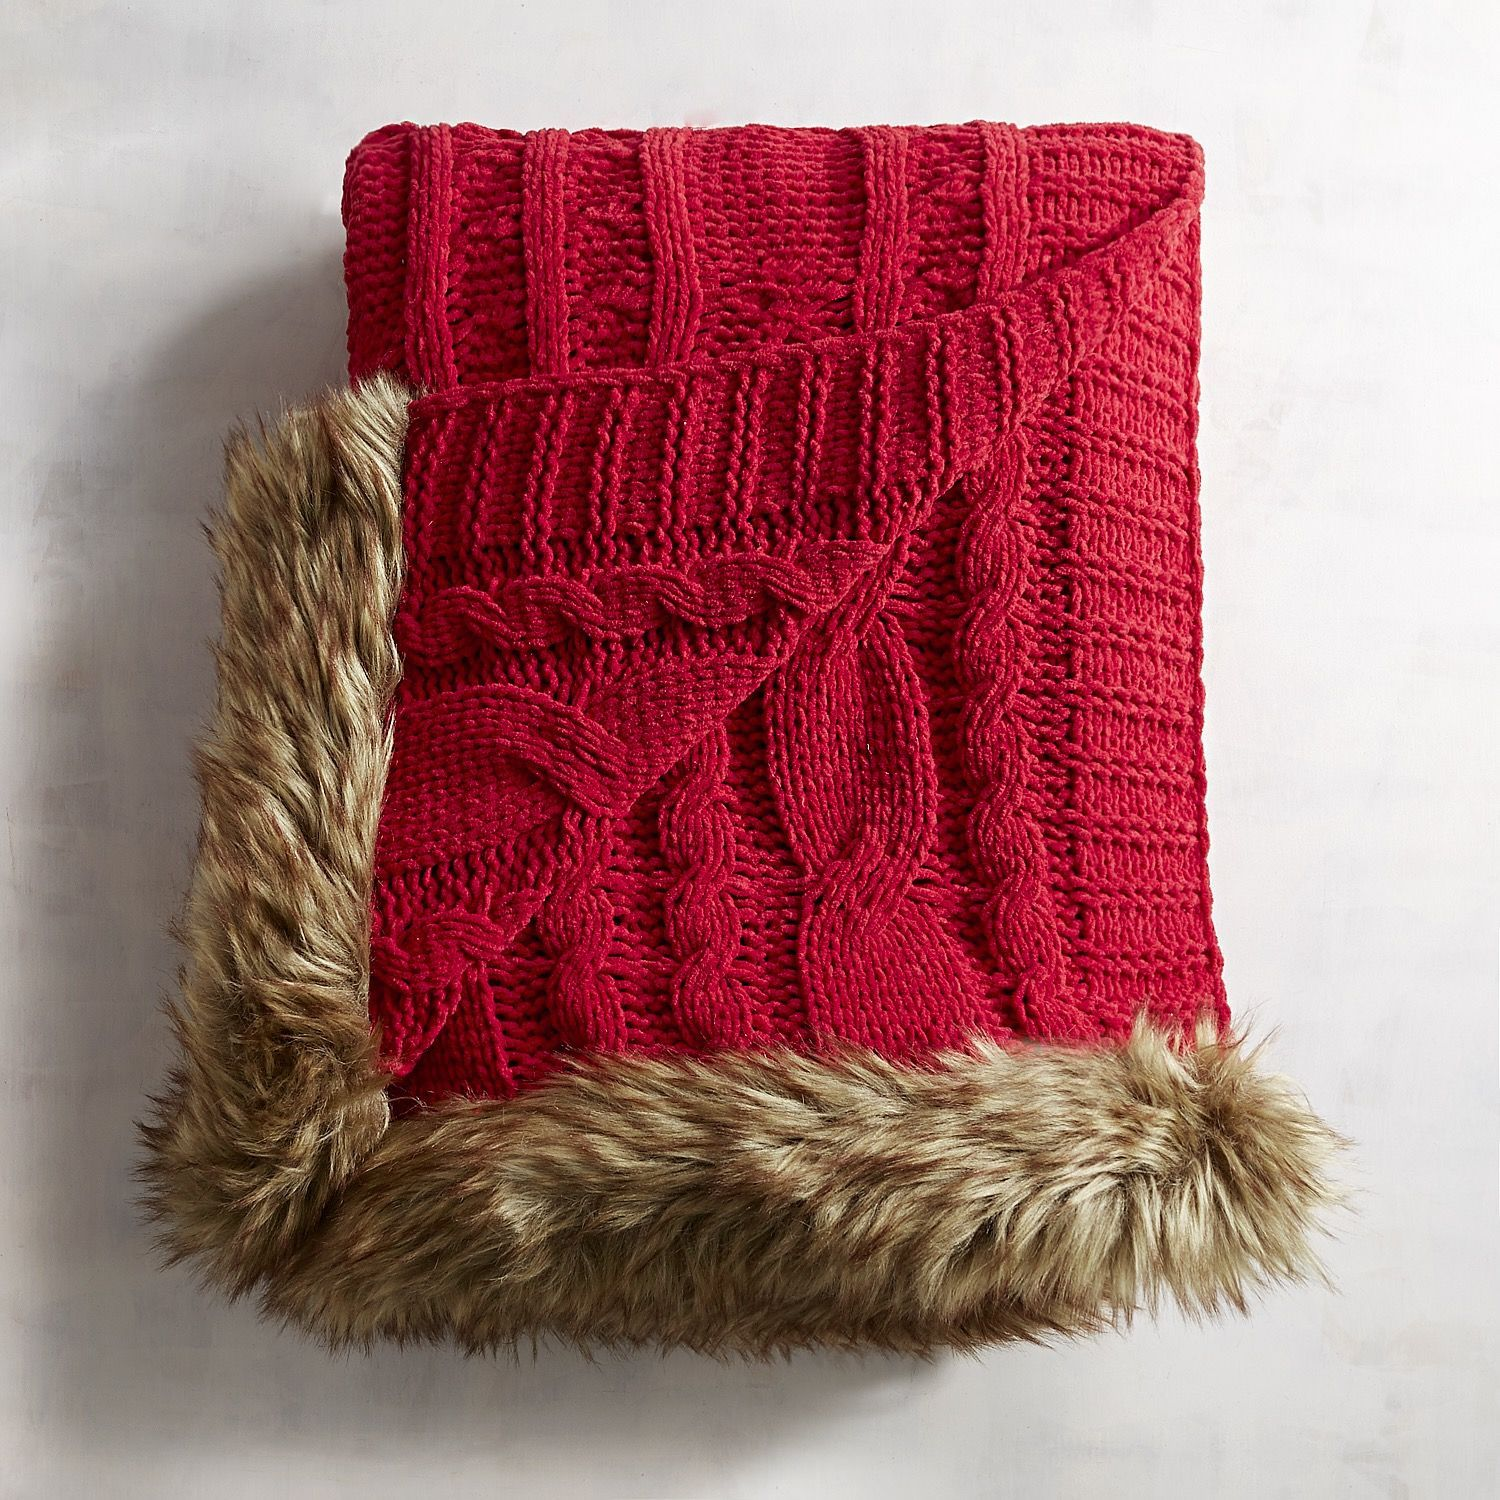 Red Cable-Knit Faux Fur Trim Throw | Cable knitting, Fur and Cable